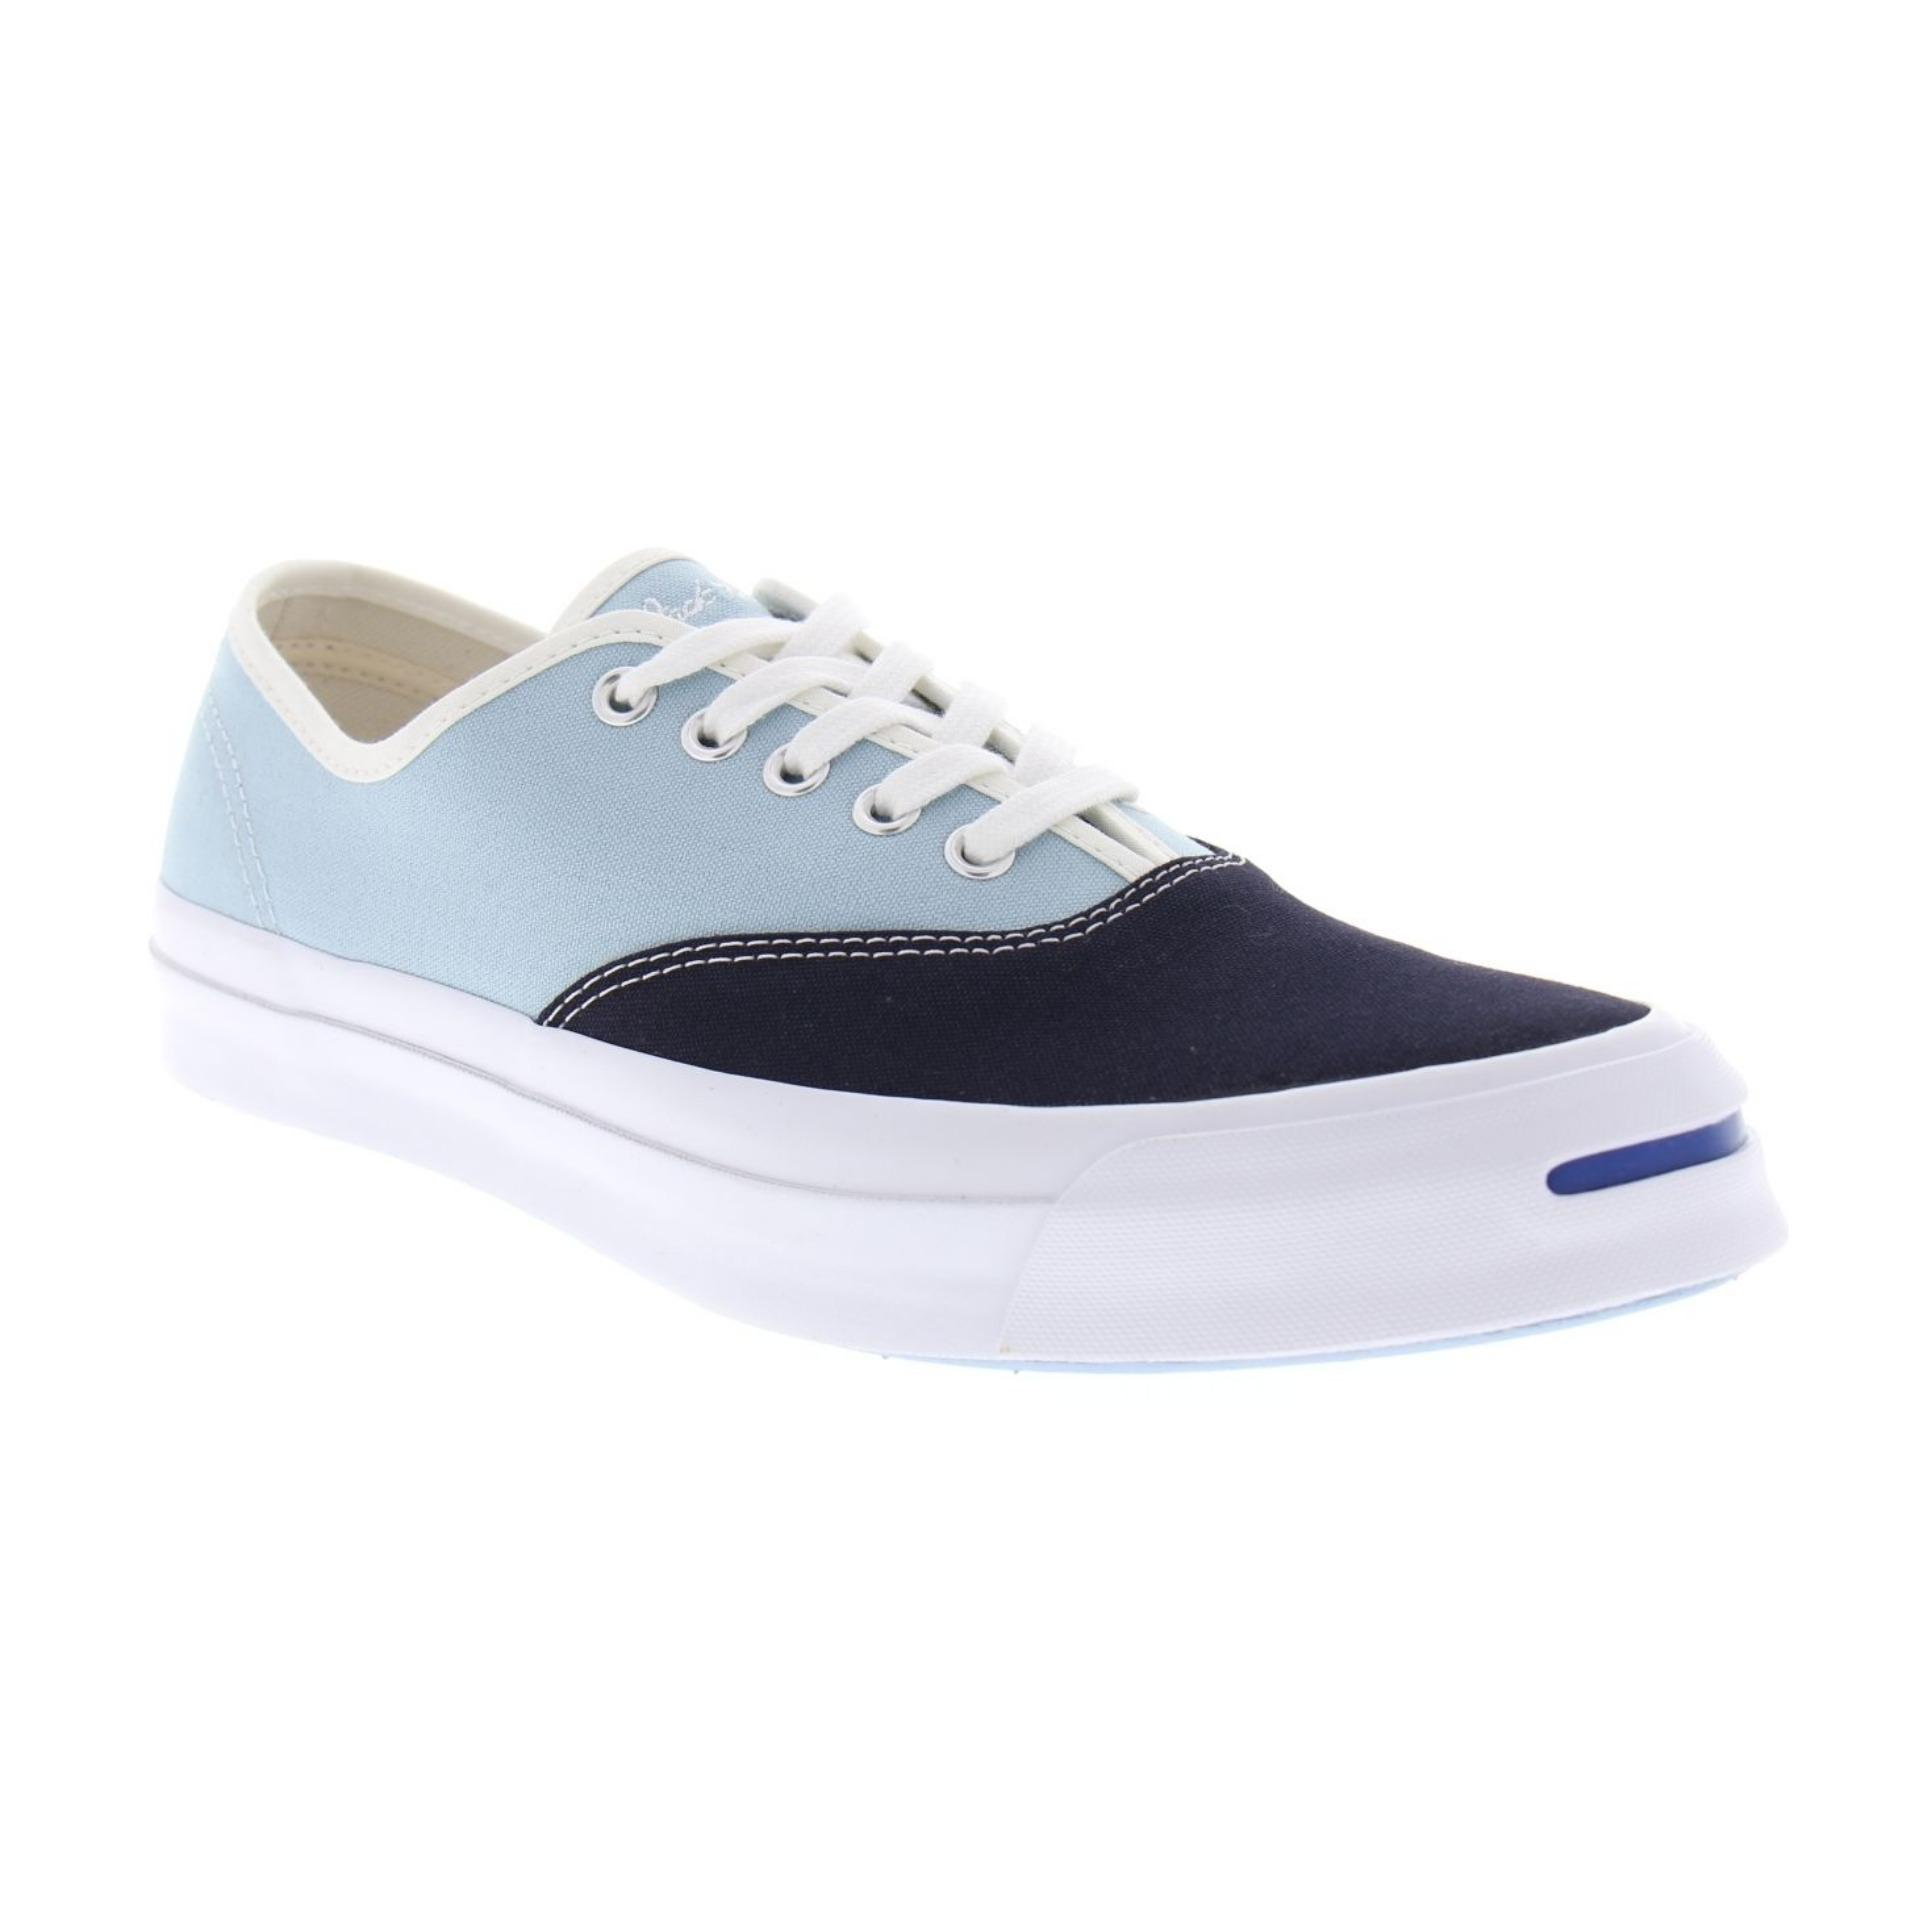 Converse Jack Purcell Signature Ox Inked CVO Edition Sepatu Sneakers Pria